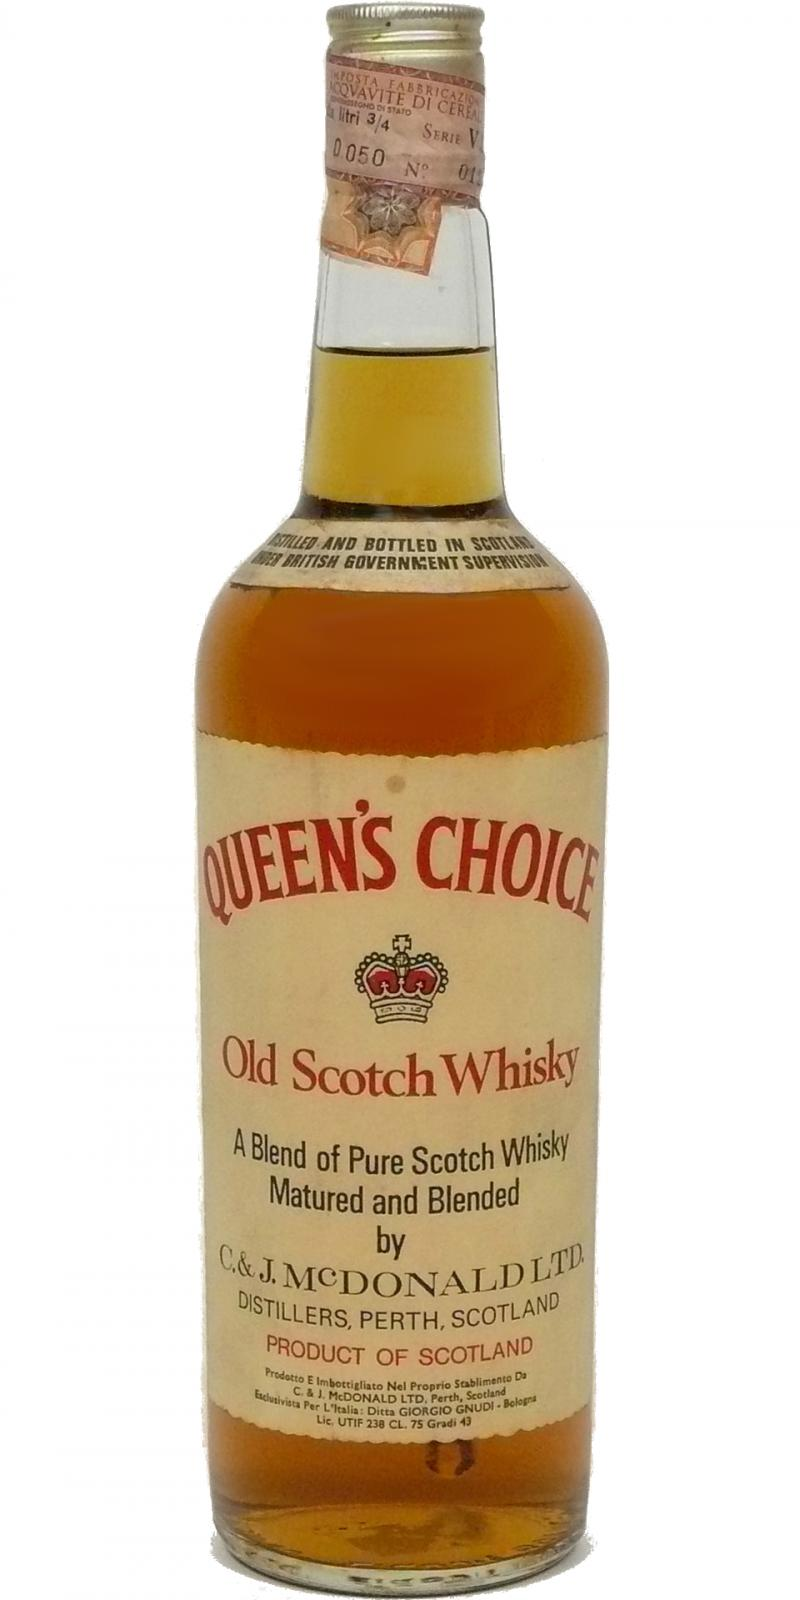 Queen's Choice Old Scotch Whisky